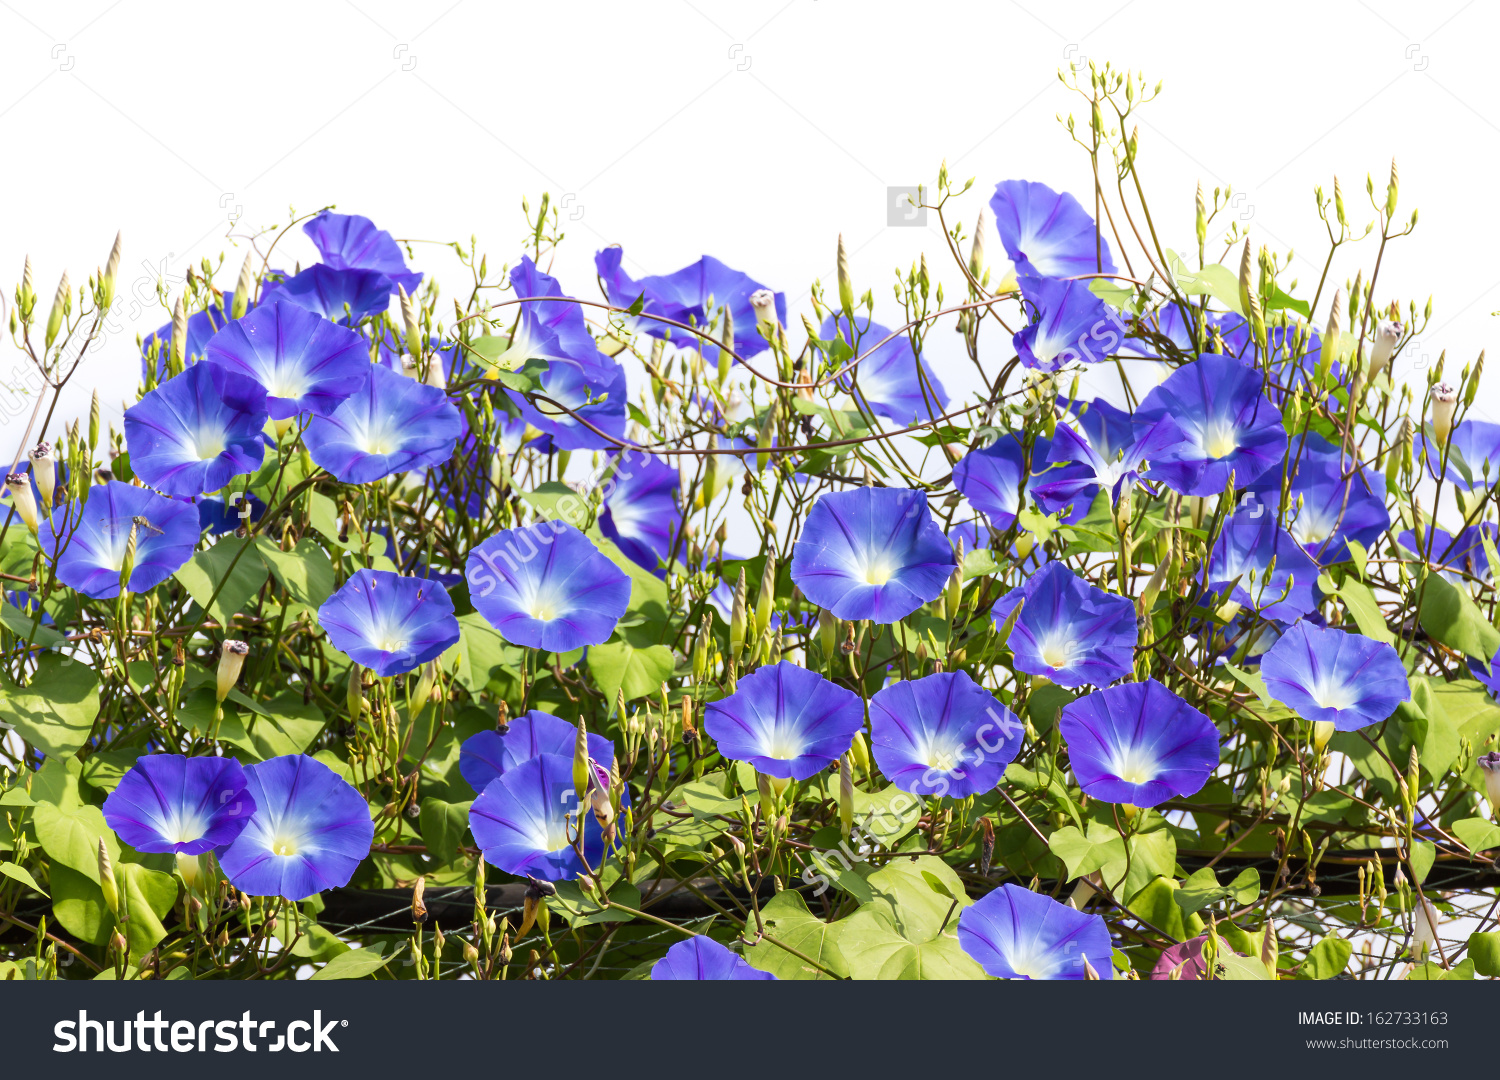 Morning Glory Ipomoea Flowering Plants Family Stock Photo.